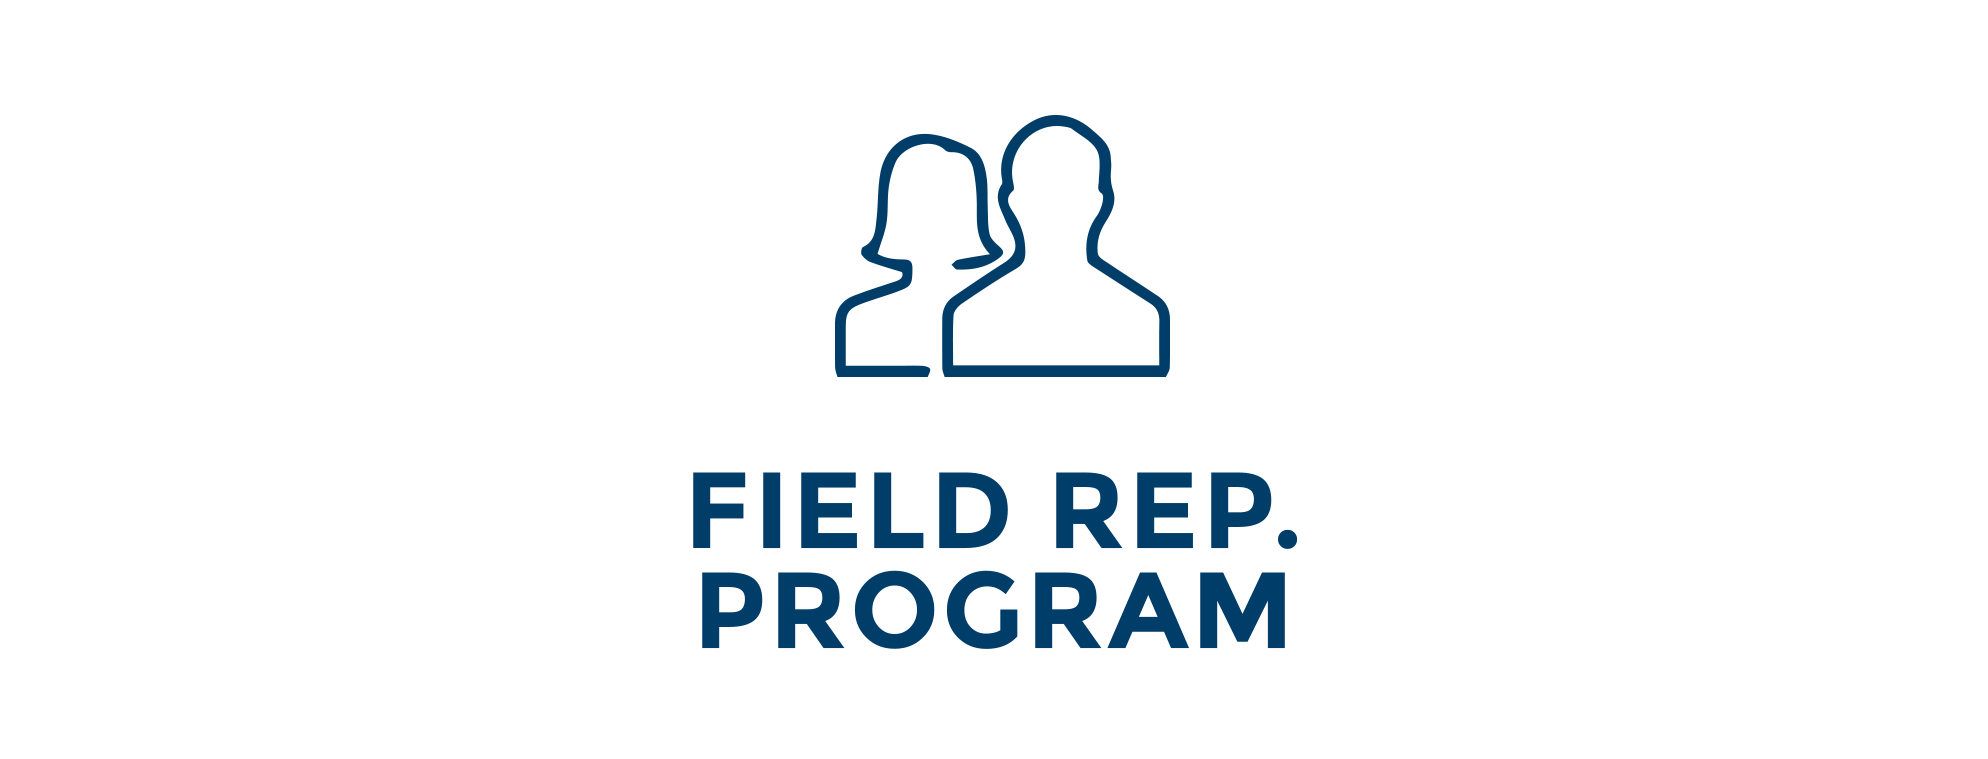 field-rep-program.png